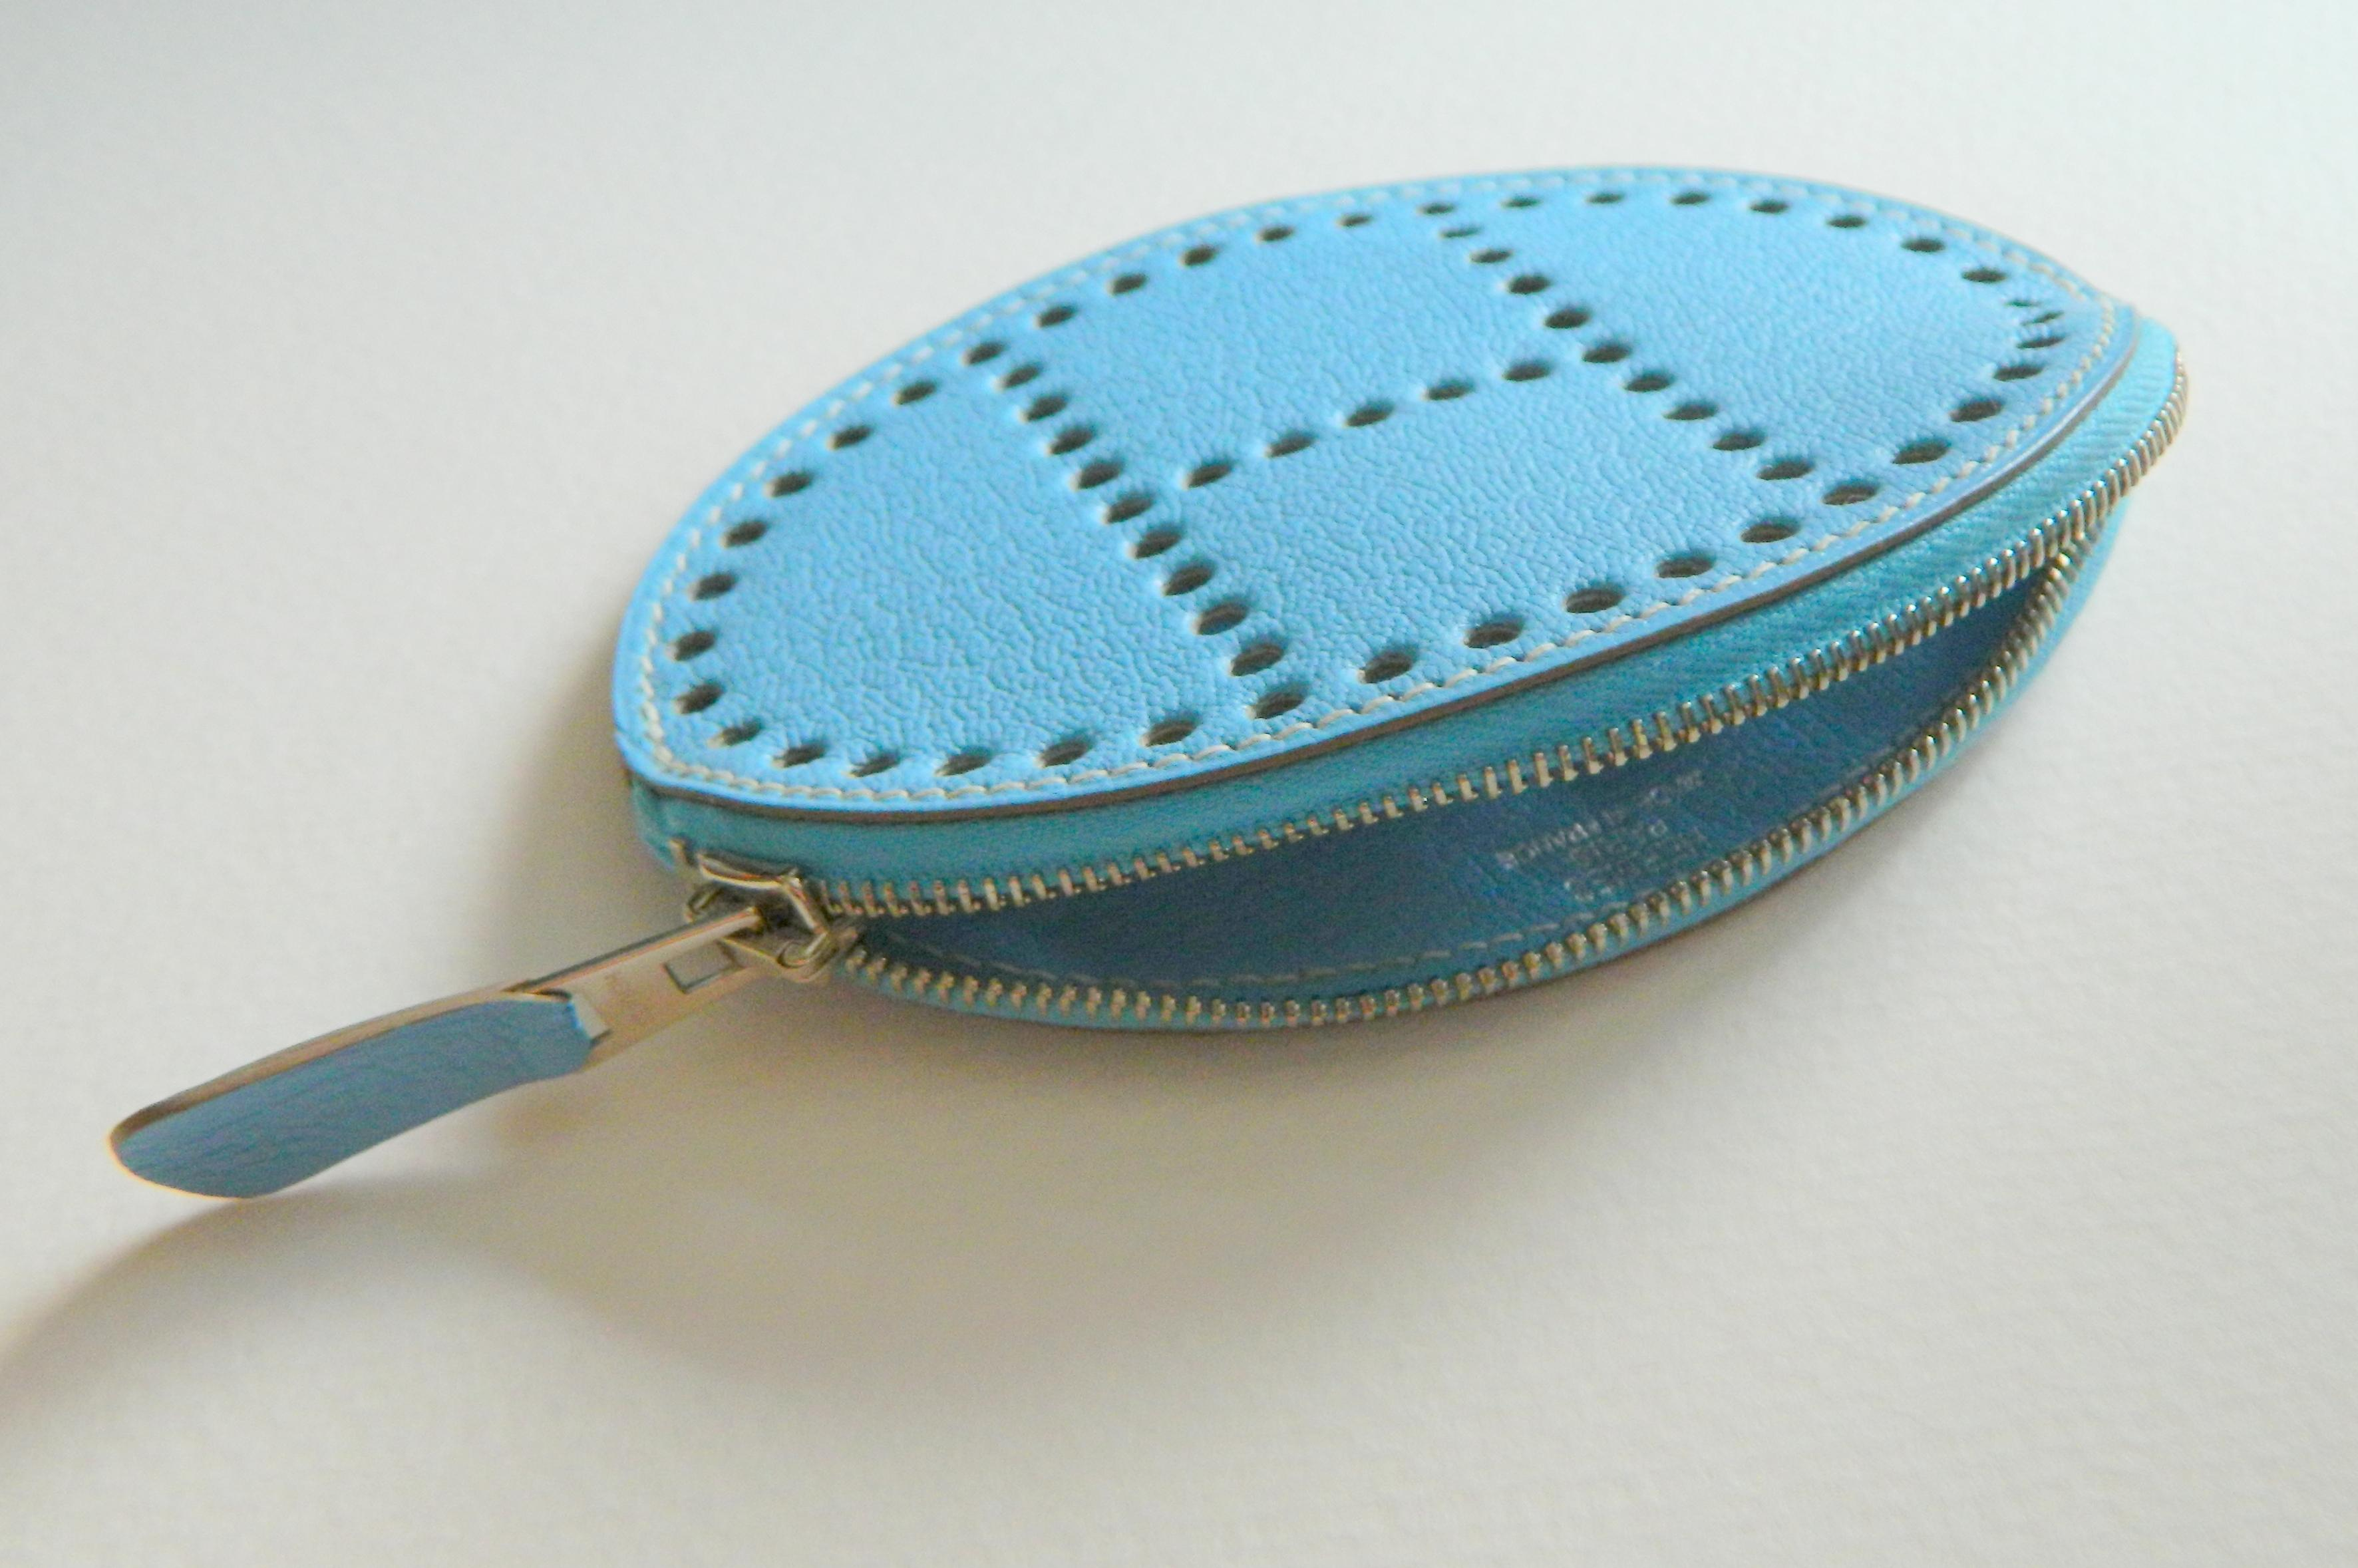 f708bf665ca8 ... coupon hermès hermes evelyne blue jean leather coin purse chevre mysore  o stamp . 12345678 856d7